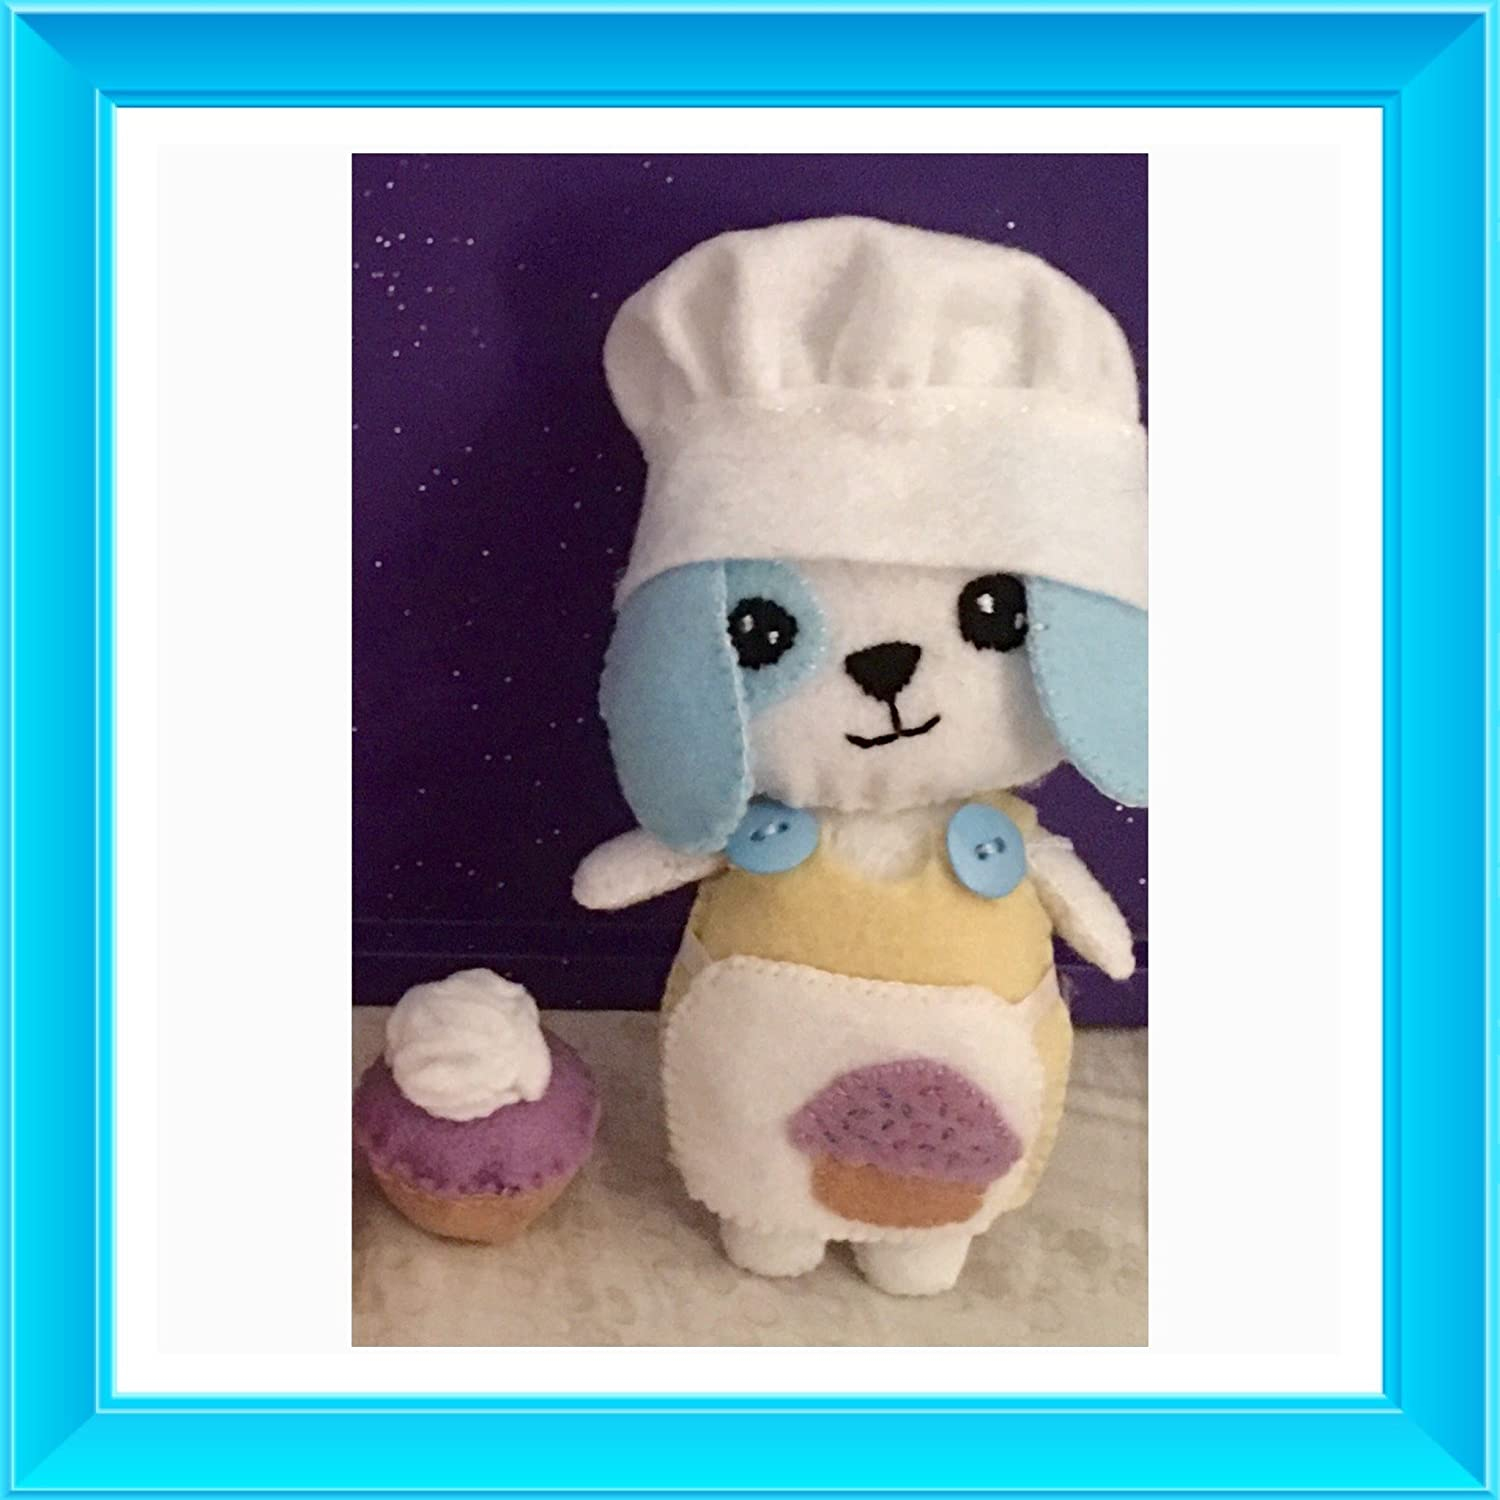 Chef in Training lil Pierre with his own cupcake creation Felt Plush Creation ~Hand-sewn with love Patisserie Puppies